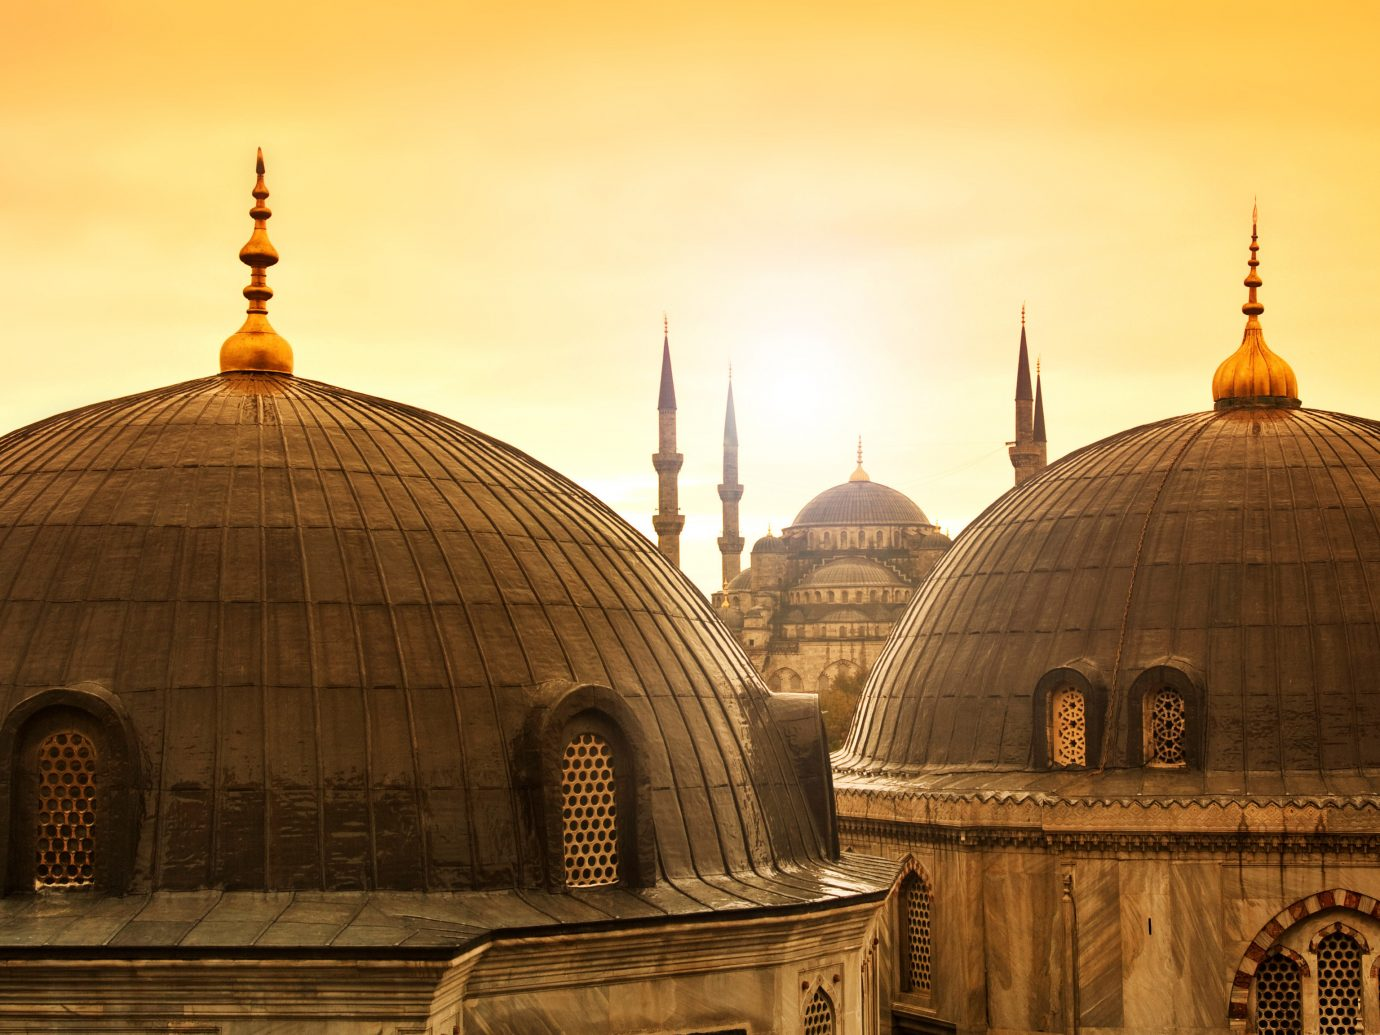 Trip Ideas sky building outdoor place of worship dome landmark byzantine architecture ancient history mosque Church temple evening cathedral basilica